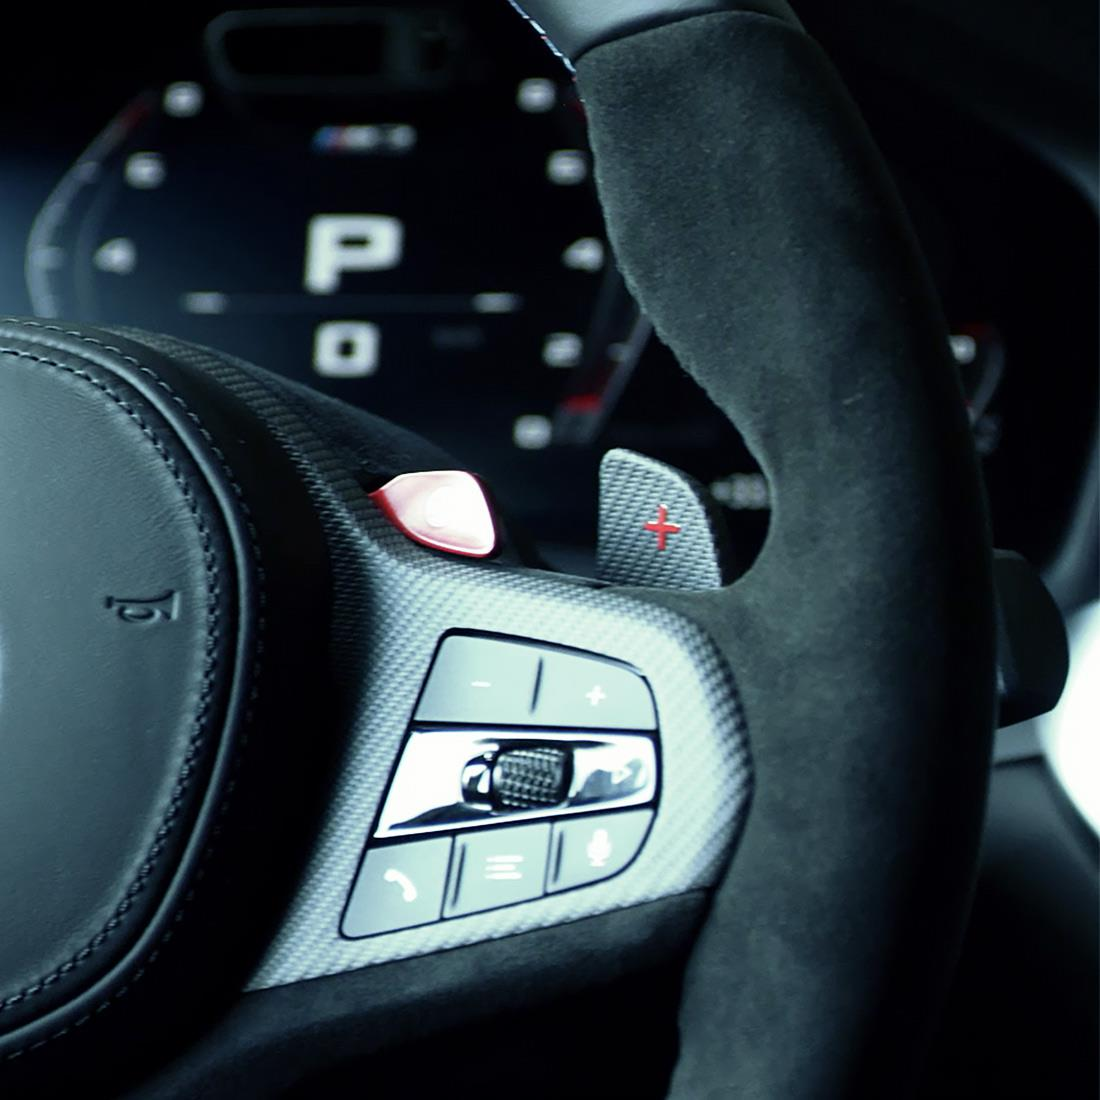 M Performance Shift paddles in carbon fiber